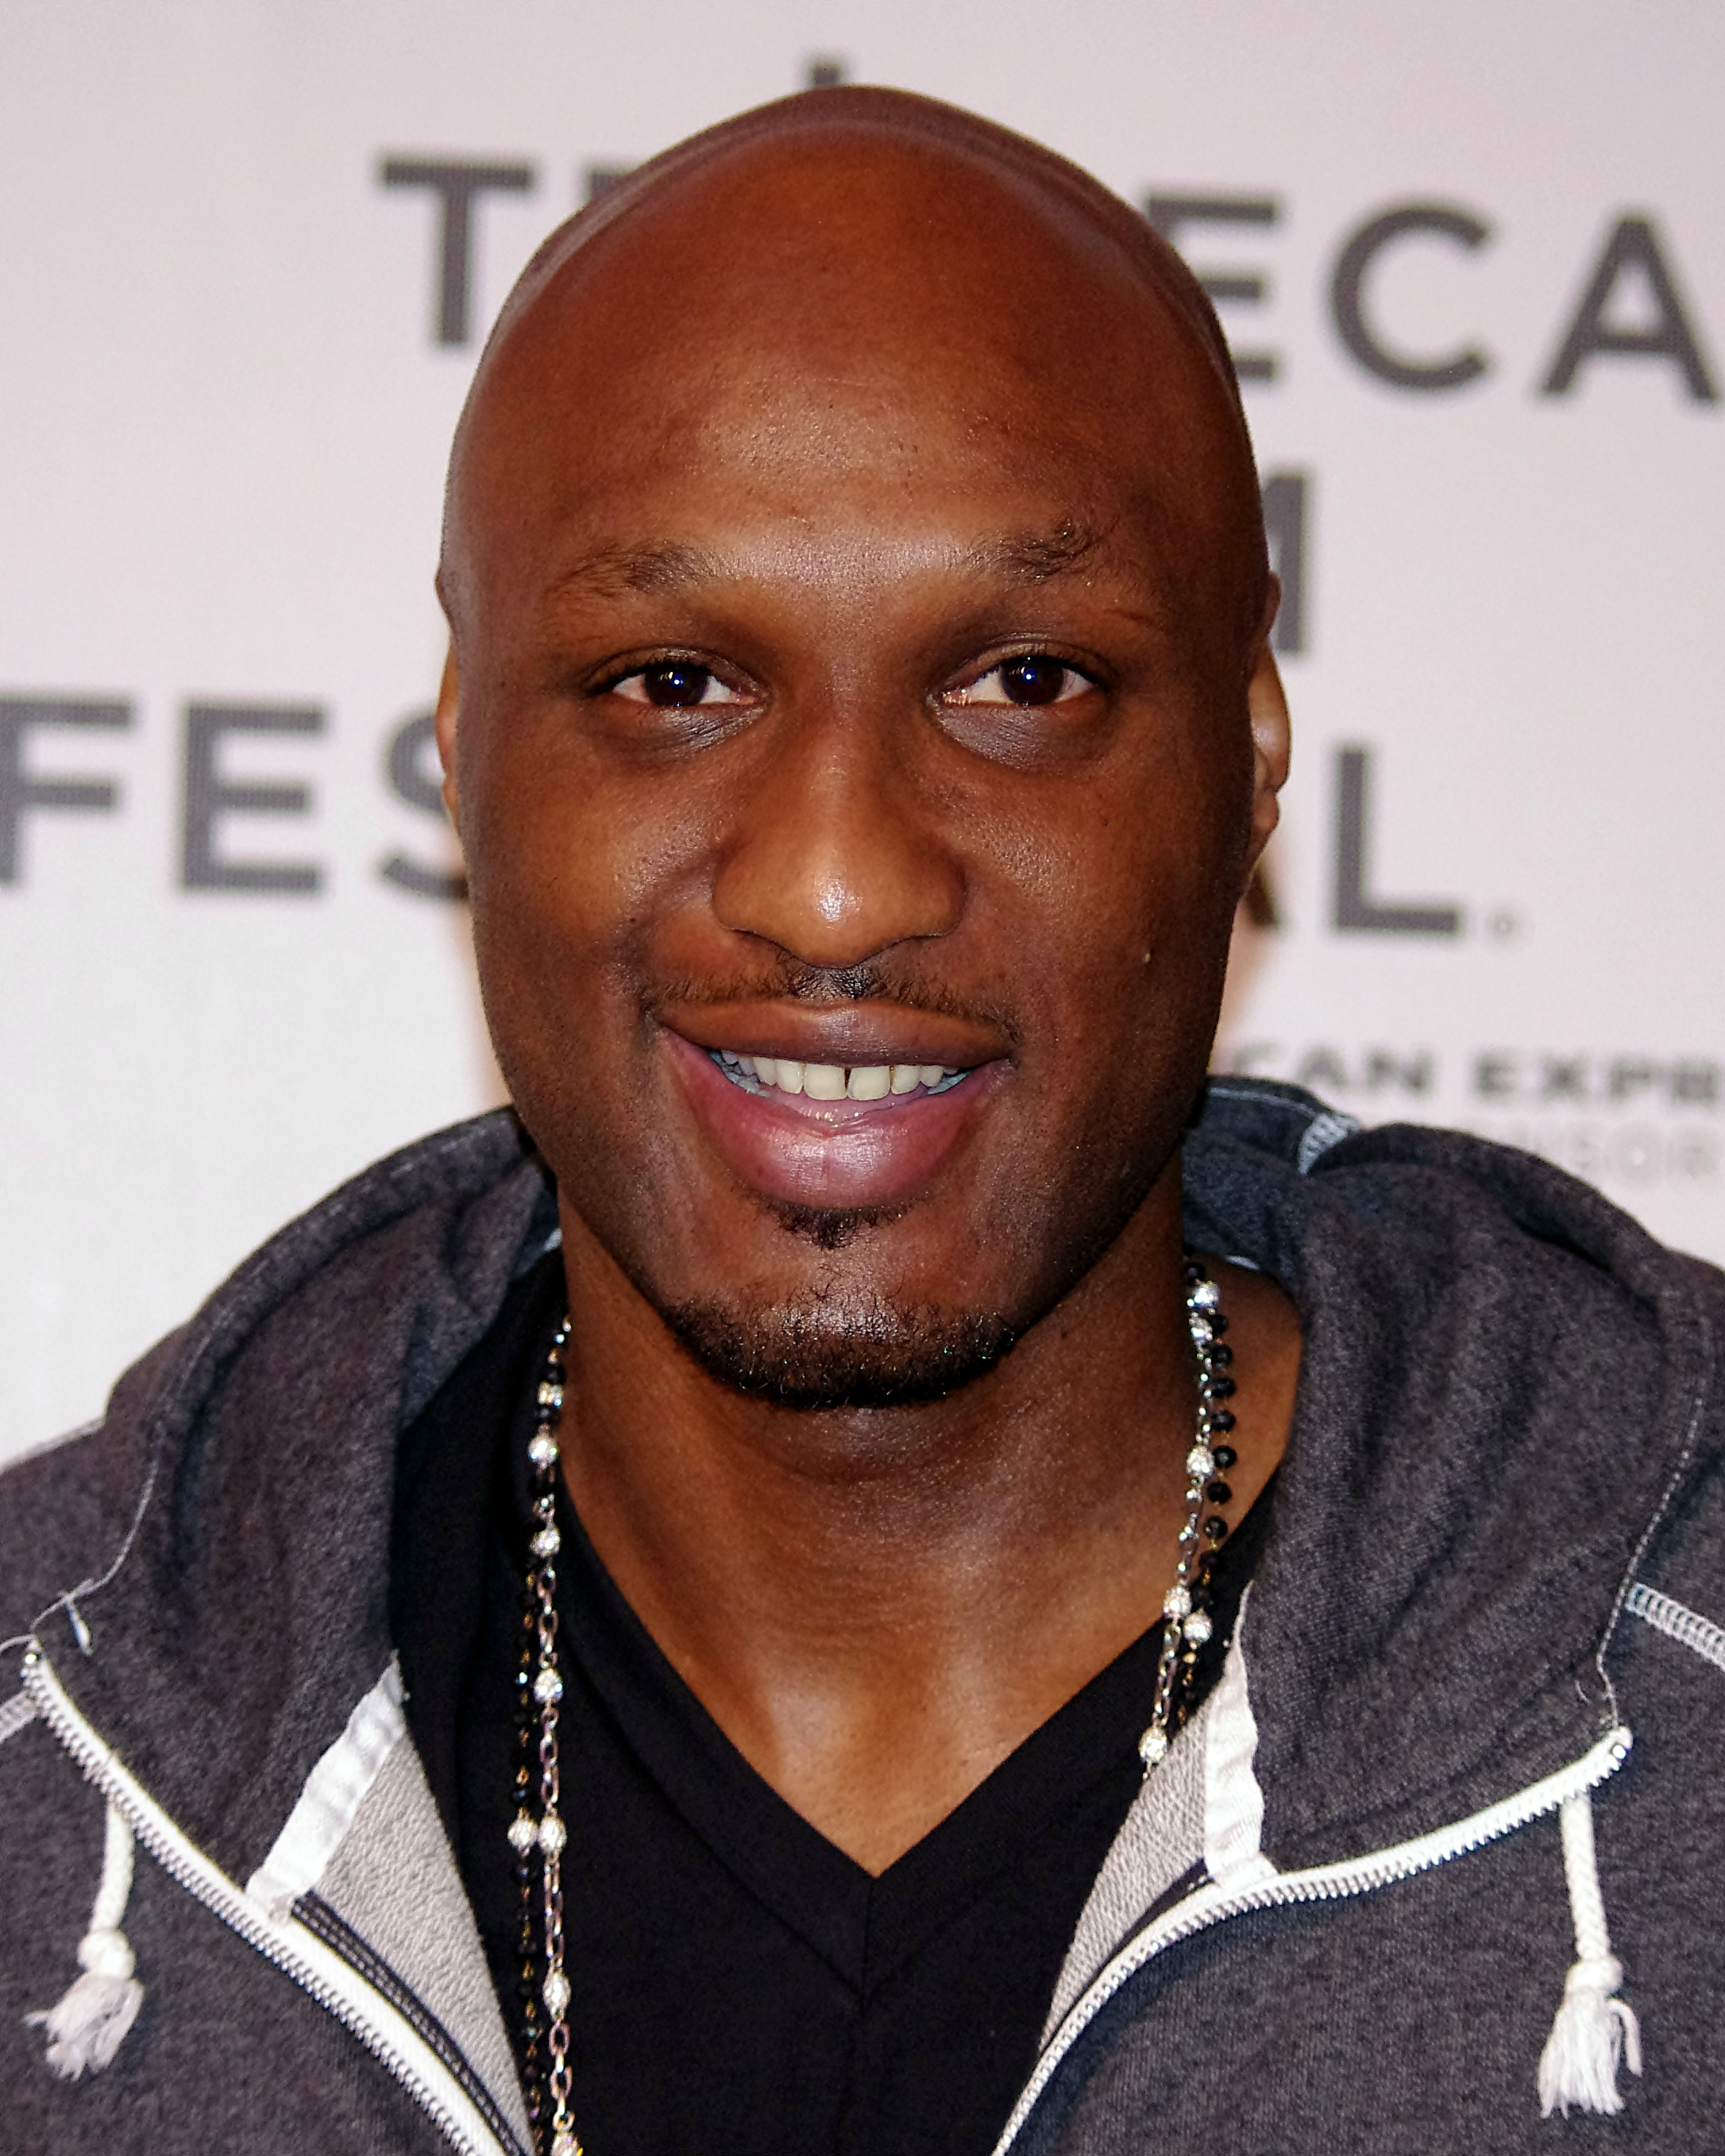 Lamar Odom earned a 8.2 million dollar salary, leaving the net worth at 50 million in 2017